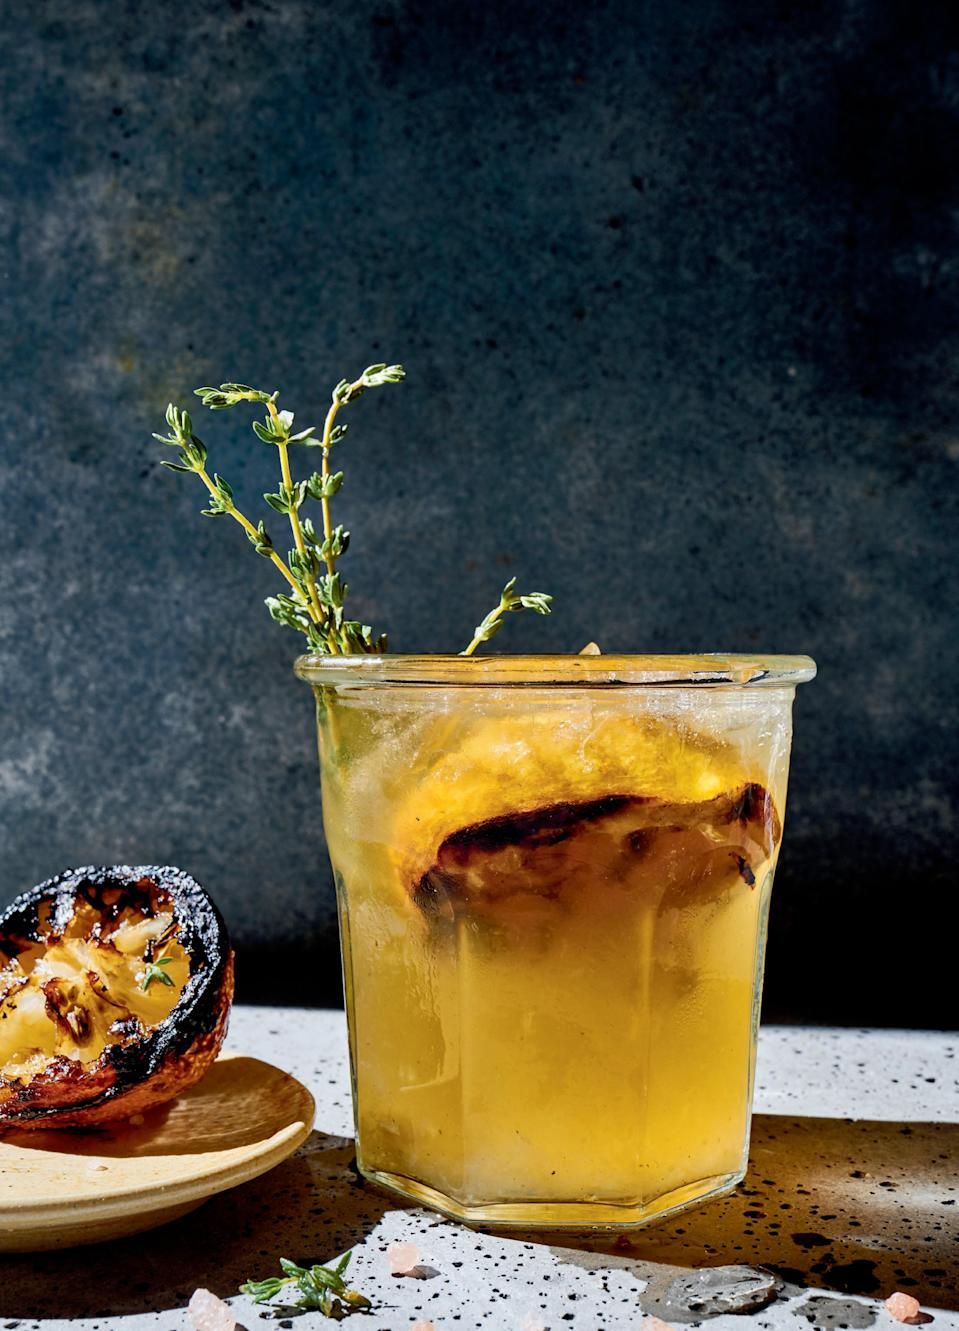 """For a drink that goes with anything, turn to this vodka-thyme-lemon concoction (a true pairs-with-anything triumvirate). The lemon halves are grilled, giving the drink a smoky edge and a touch of <a href=""""https://www.epicurious.com/expert-advice/burn-your-dinner-on-purpose-article?mbid=synd_yahoo_rss"""" rel=""""nofollow noopener"""" target=""""_blank"""" data-ylk=""""slk:balancing bitterness"""" class=""""link rapid-noclick-resp"""">balancing bitterness</a>. <a href=""""https://www.epicurious.com/recipes/food/views/thyme-out-vodka-lemonade-cocktail?mbid=synd_yahoo_rss"""" rel=""""nofollow noopener"""" target=""""_blank"""" data-ylk=""""slk:See recipe."""" class=""""link rapid-noclick-resp"""">See recipe.</a>"""